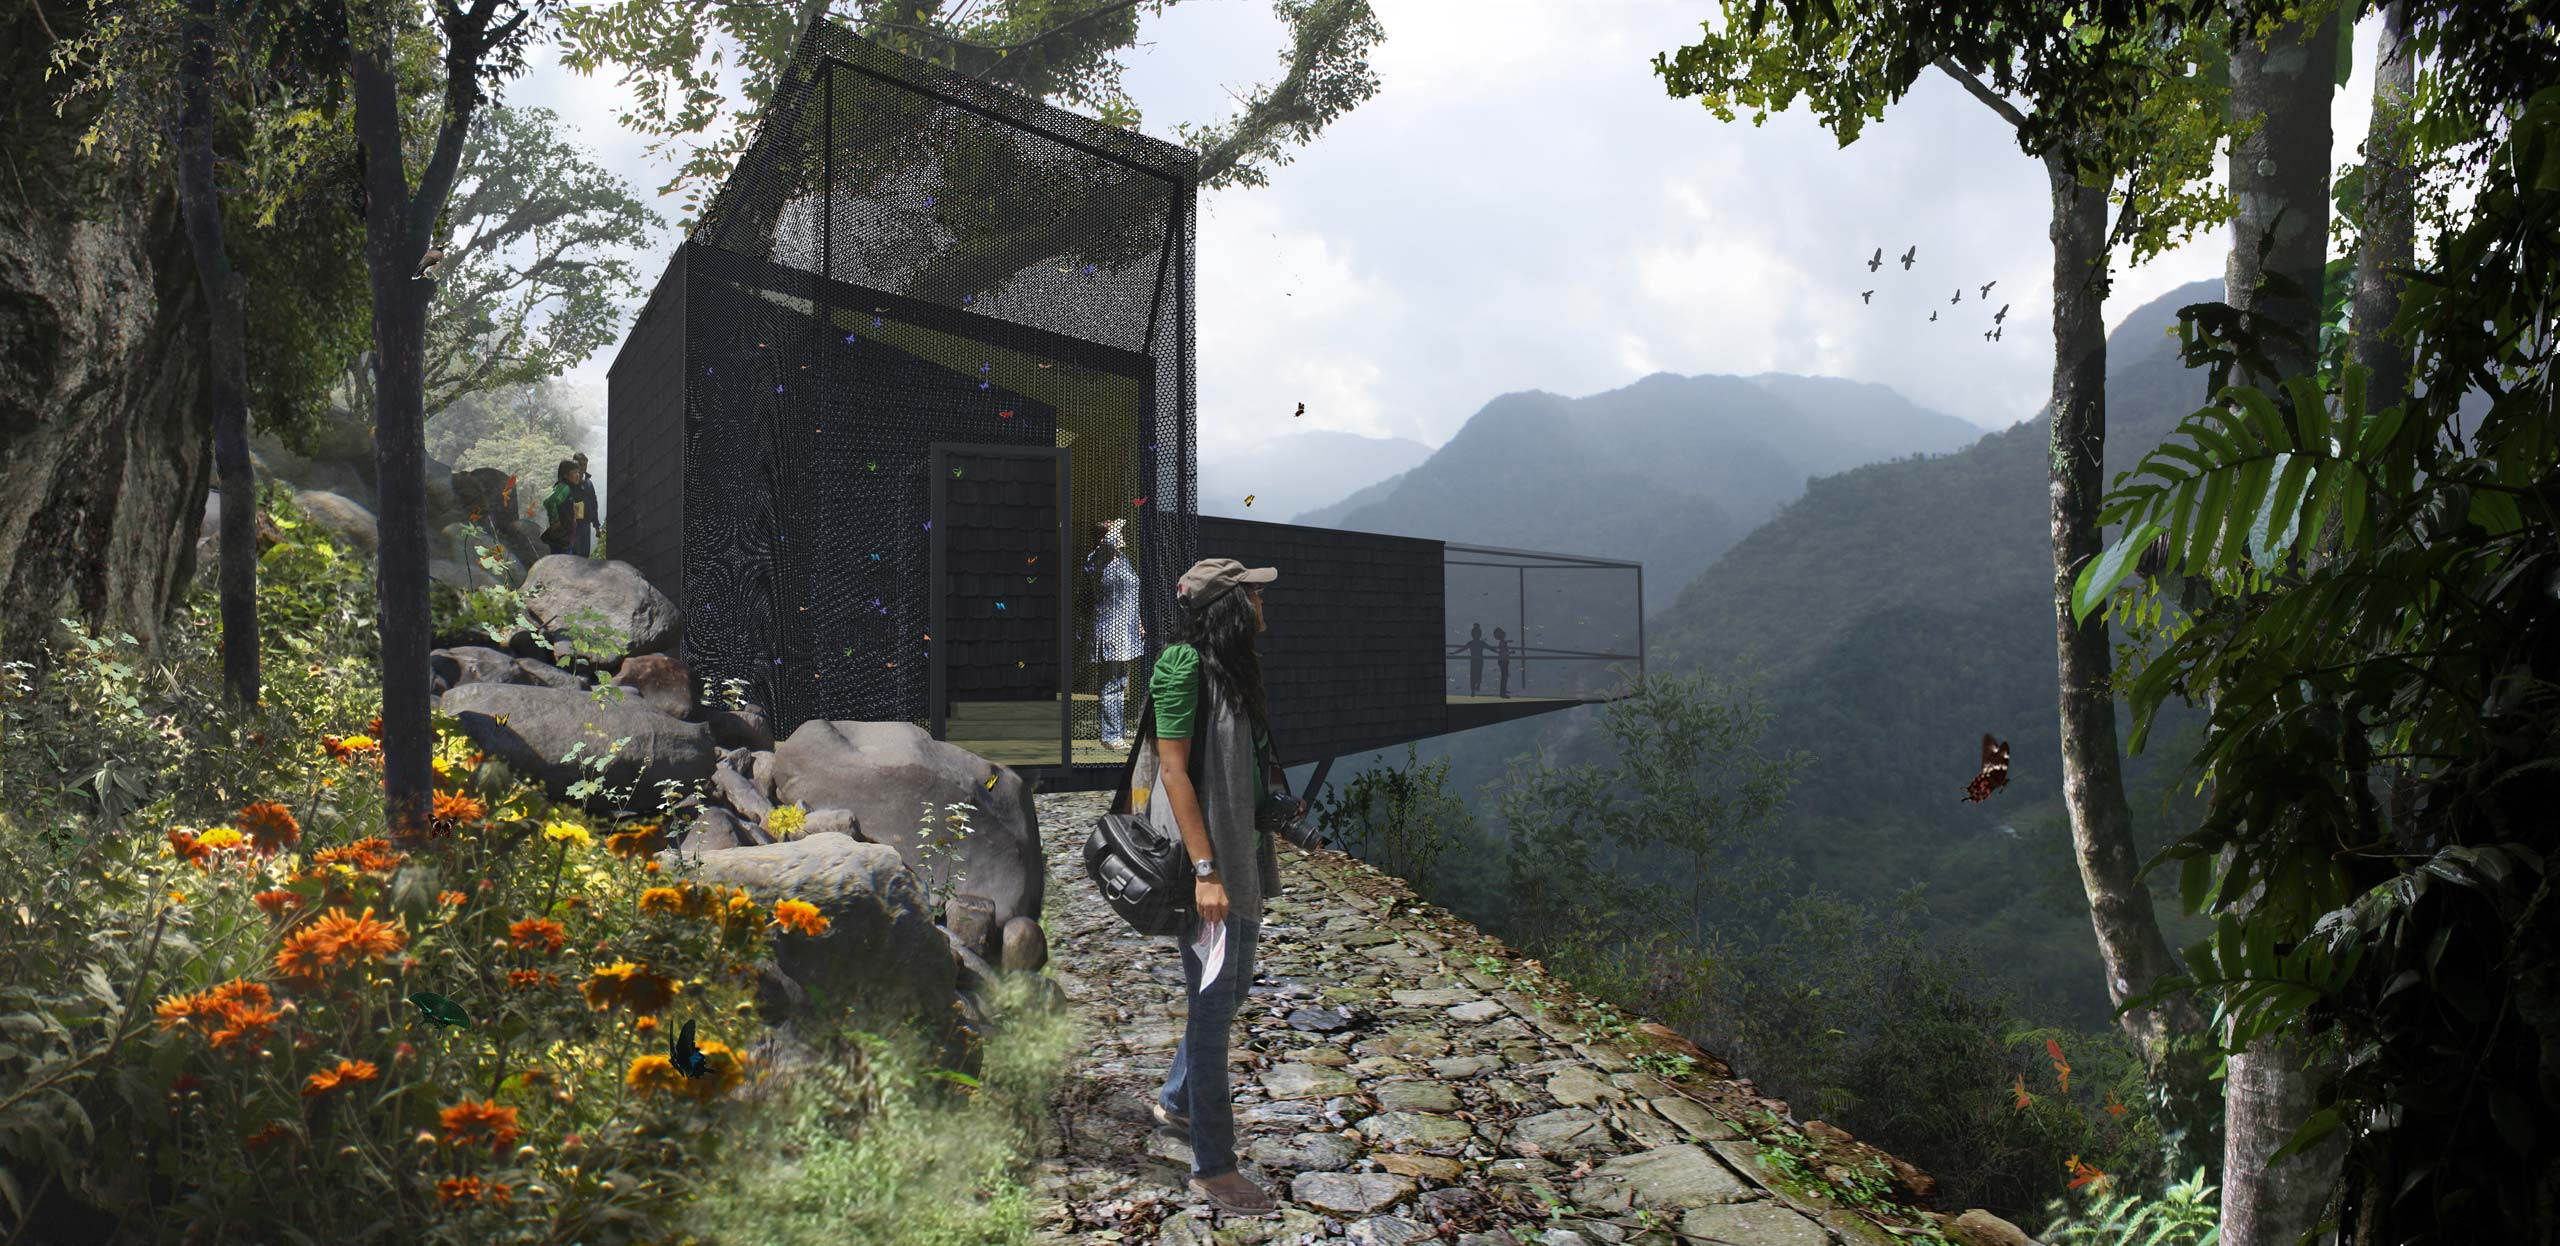 Interpretation Centre and Butterfly Enclosure at Sikkim Butterfly Reserve